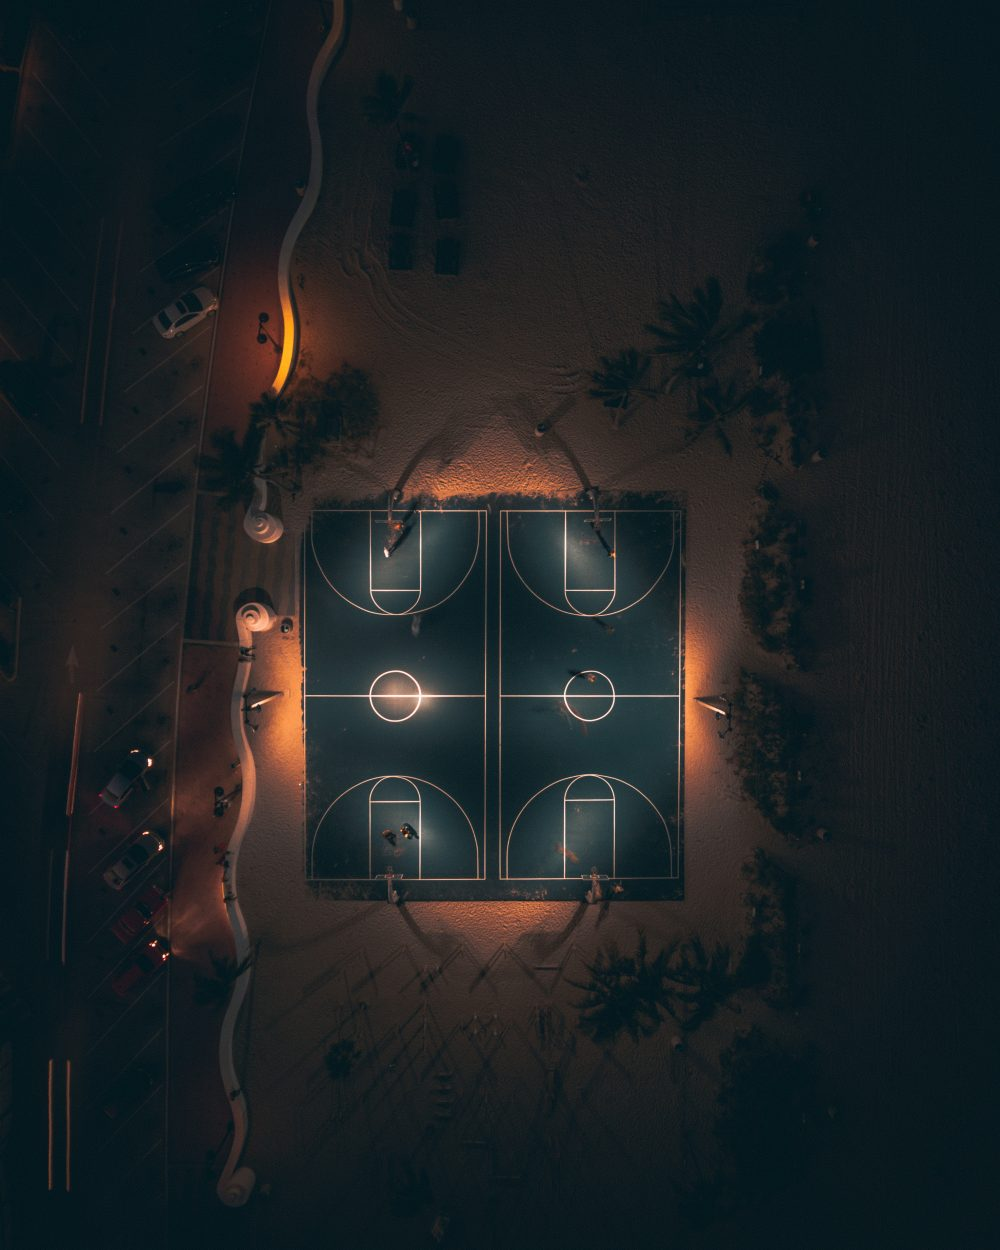 Drone image of basketball court